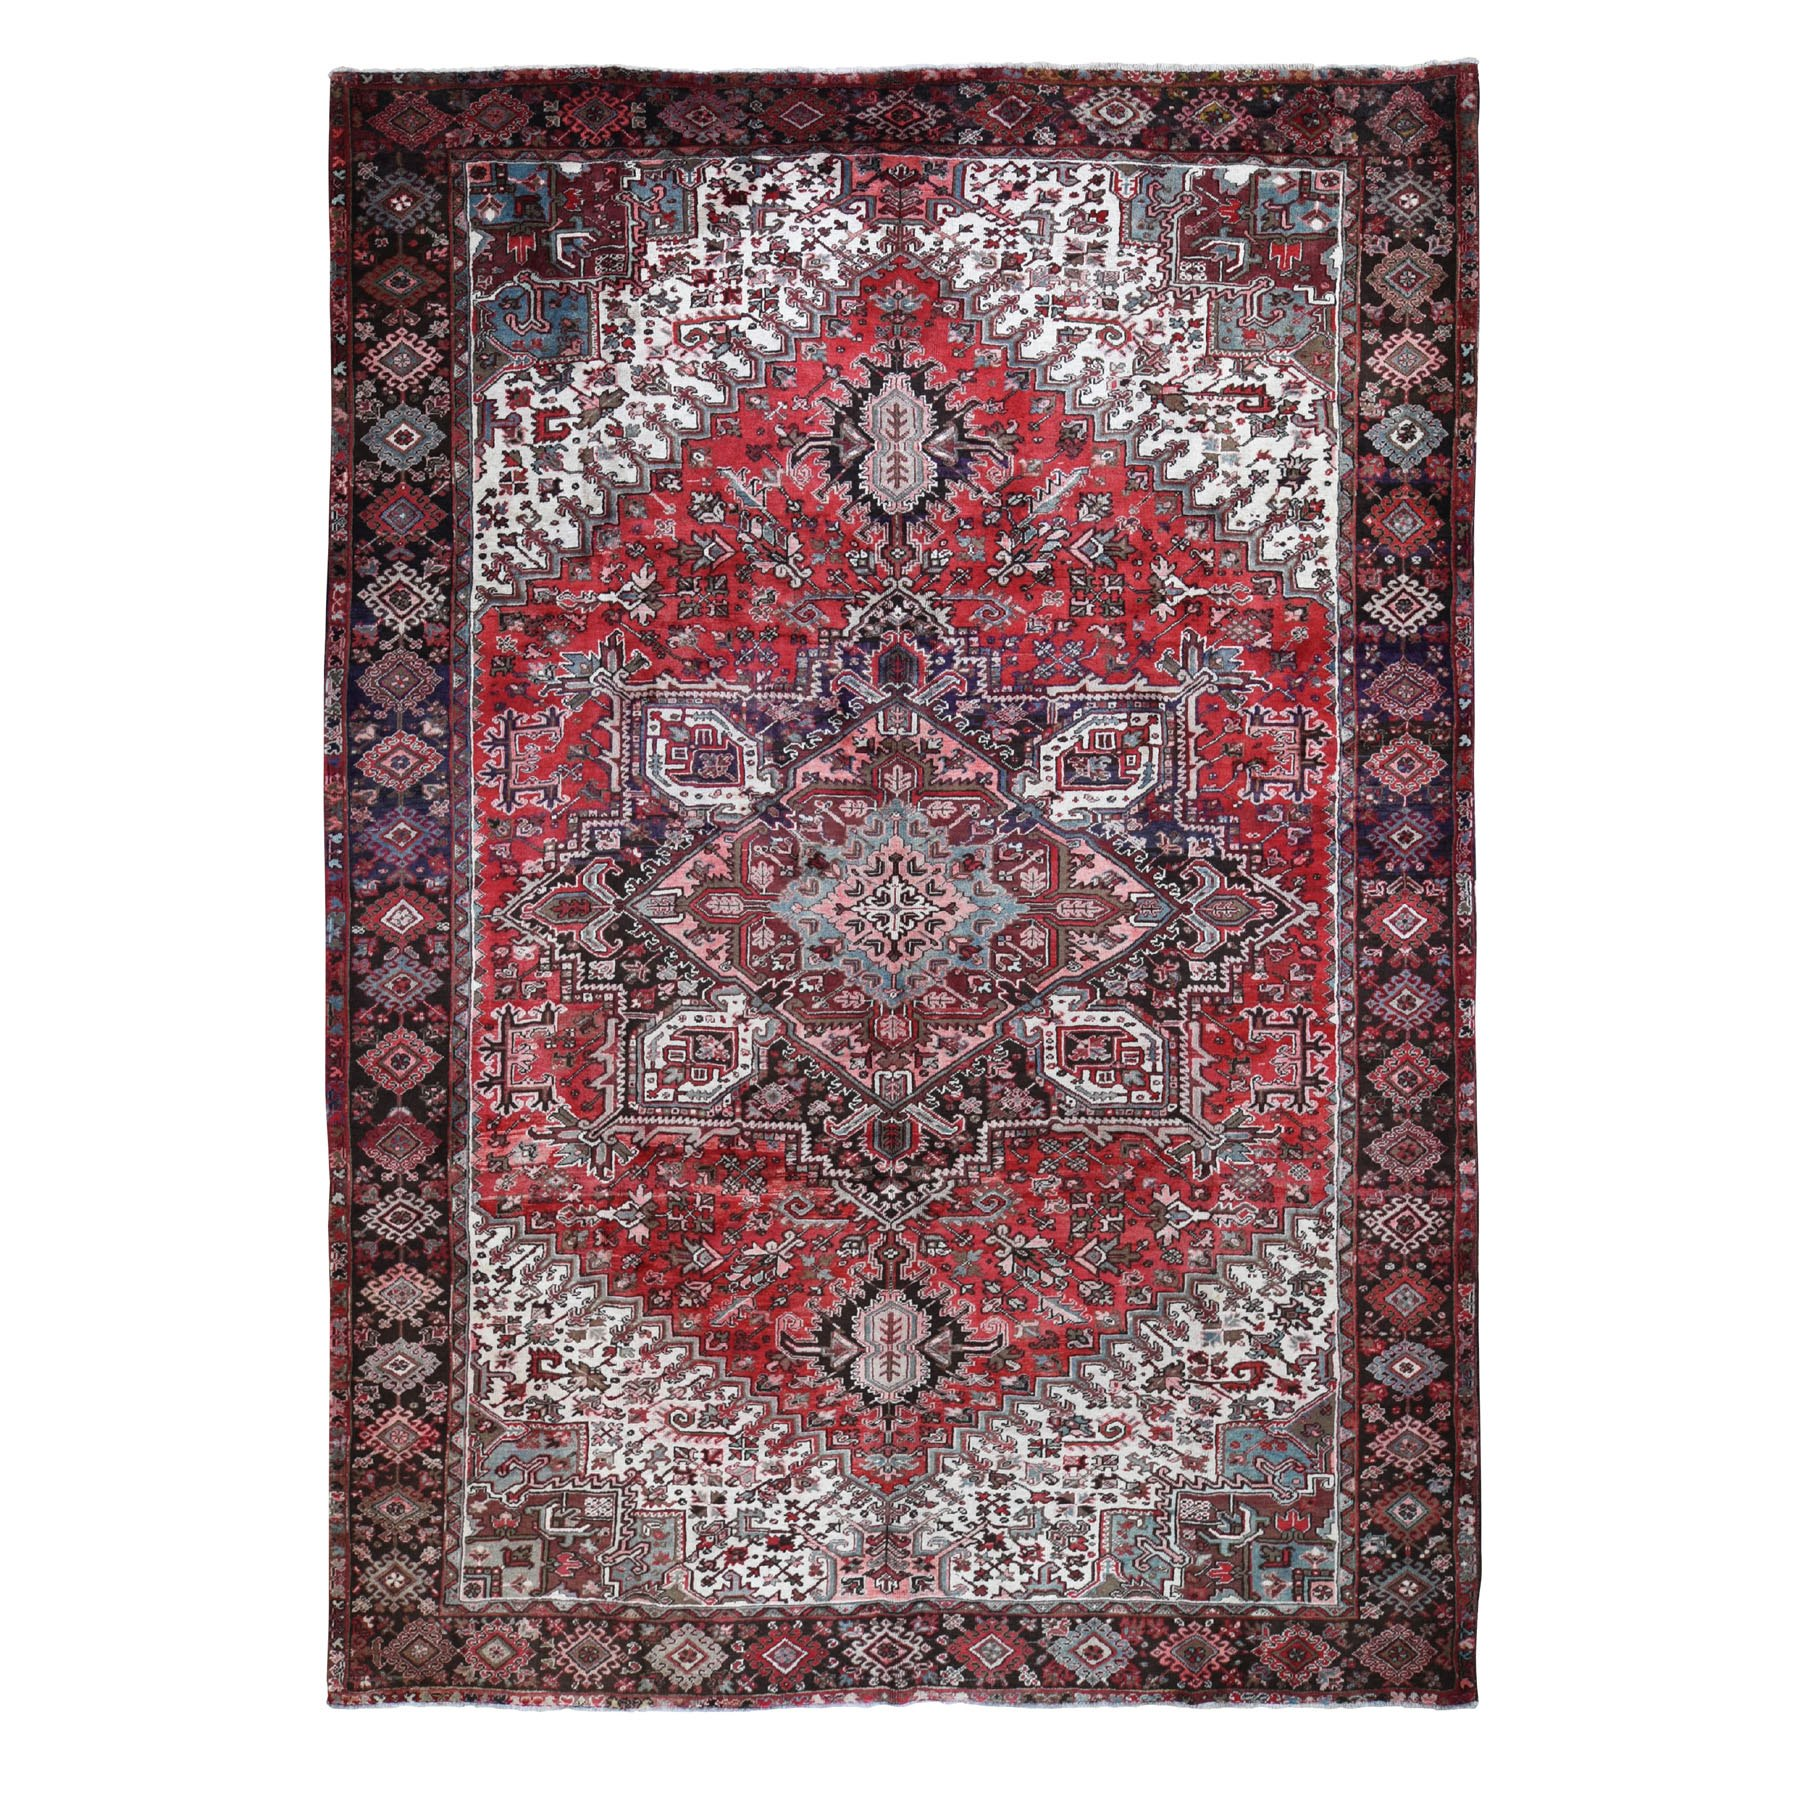 "9'10""x13'1"" Red Semi Antique Persian Heriz Geometric Design Thick and Plush Hand Knotted Oriental Rug"